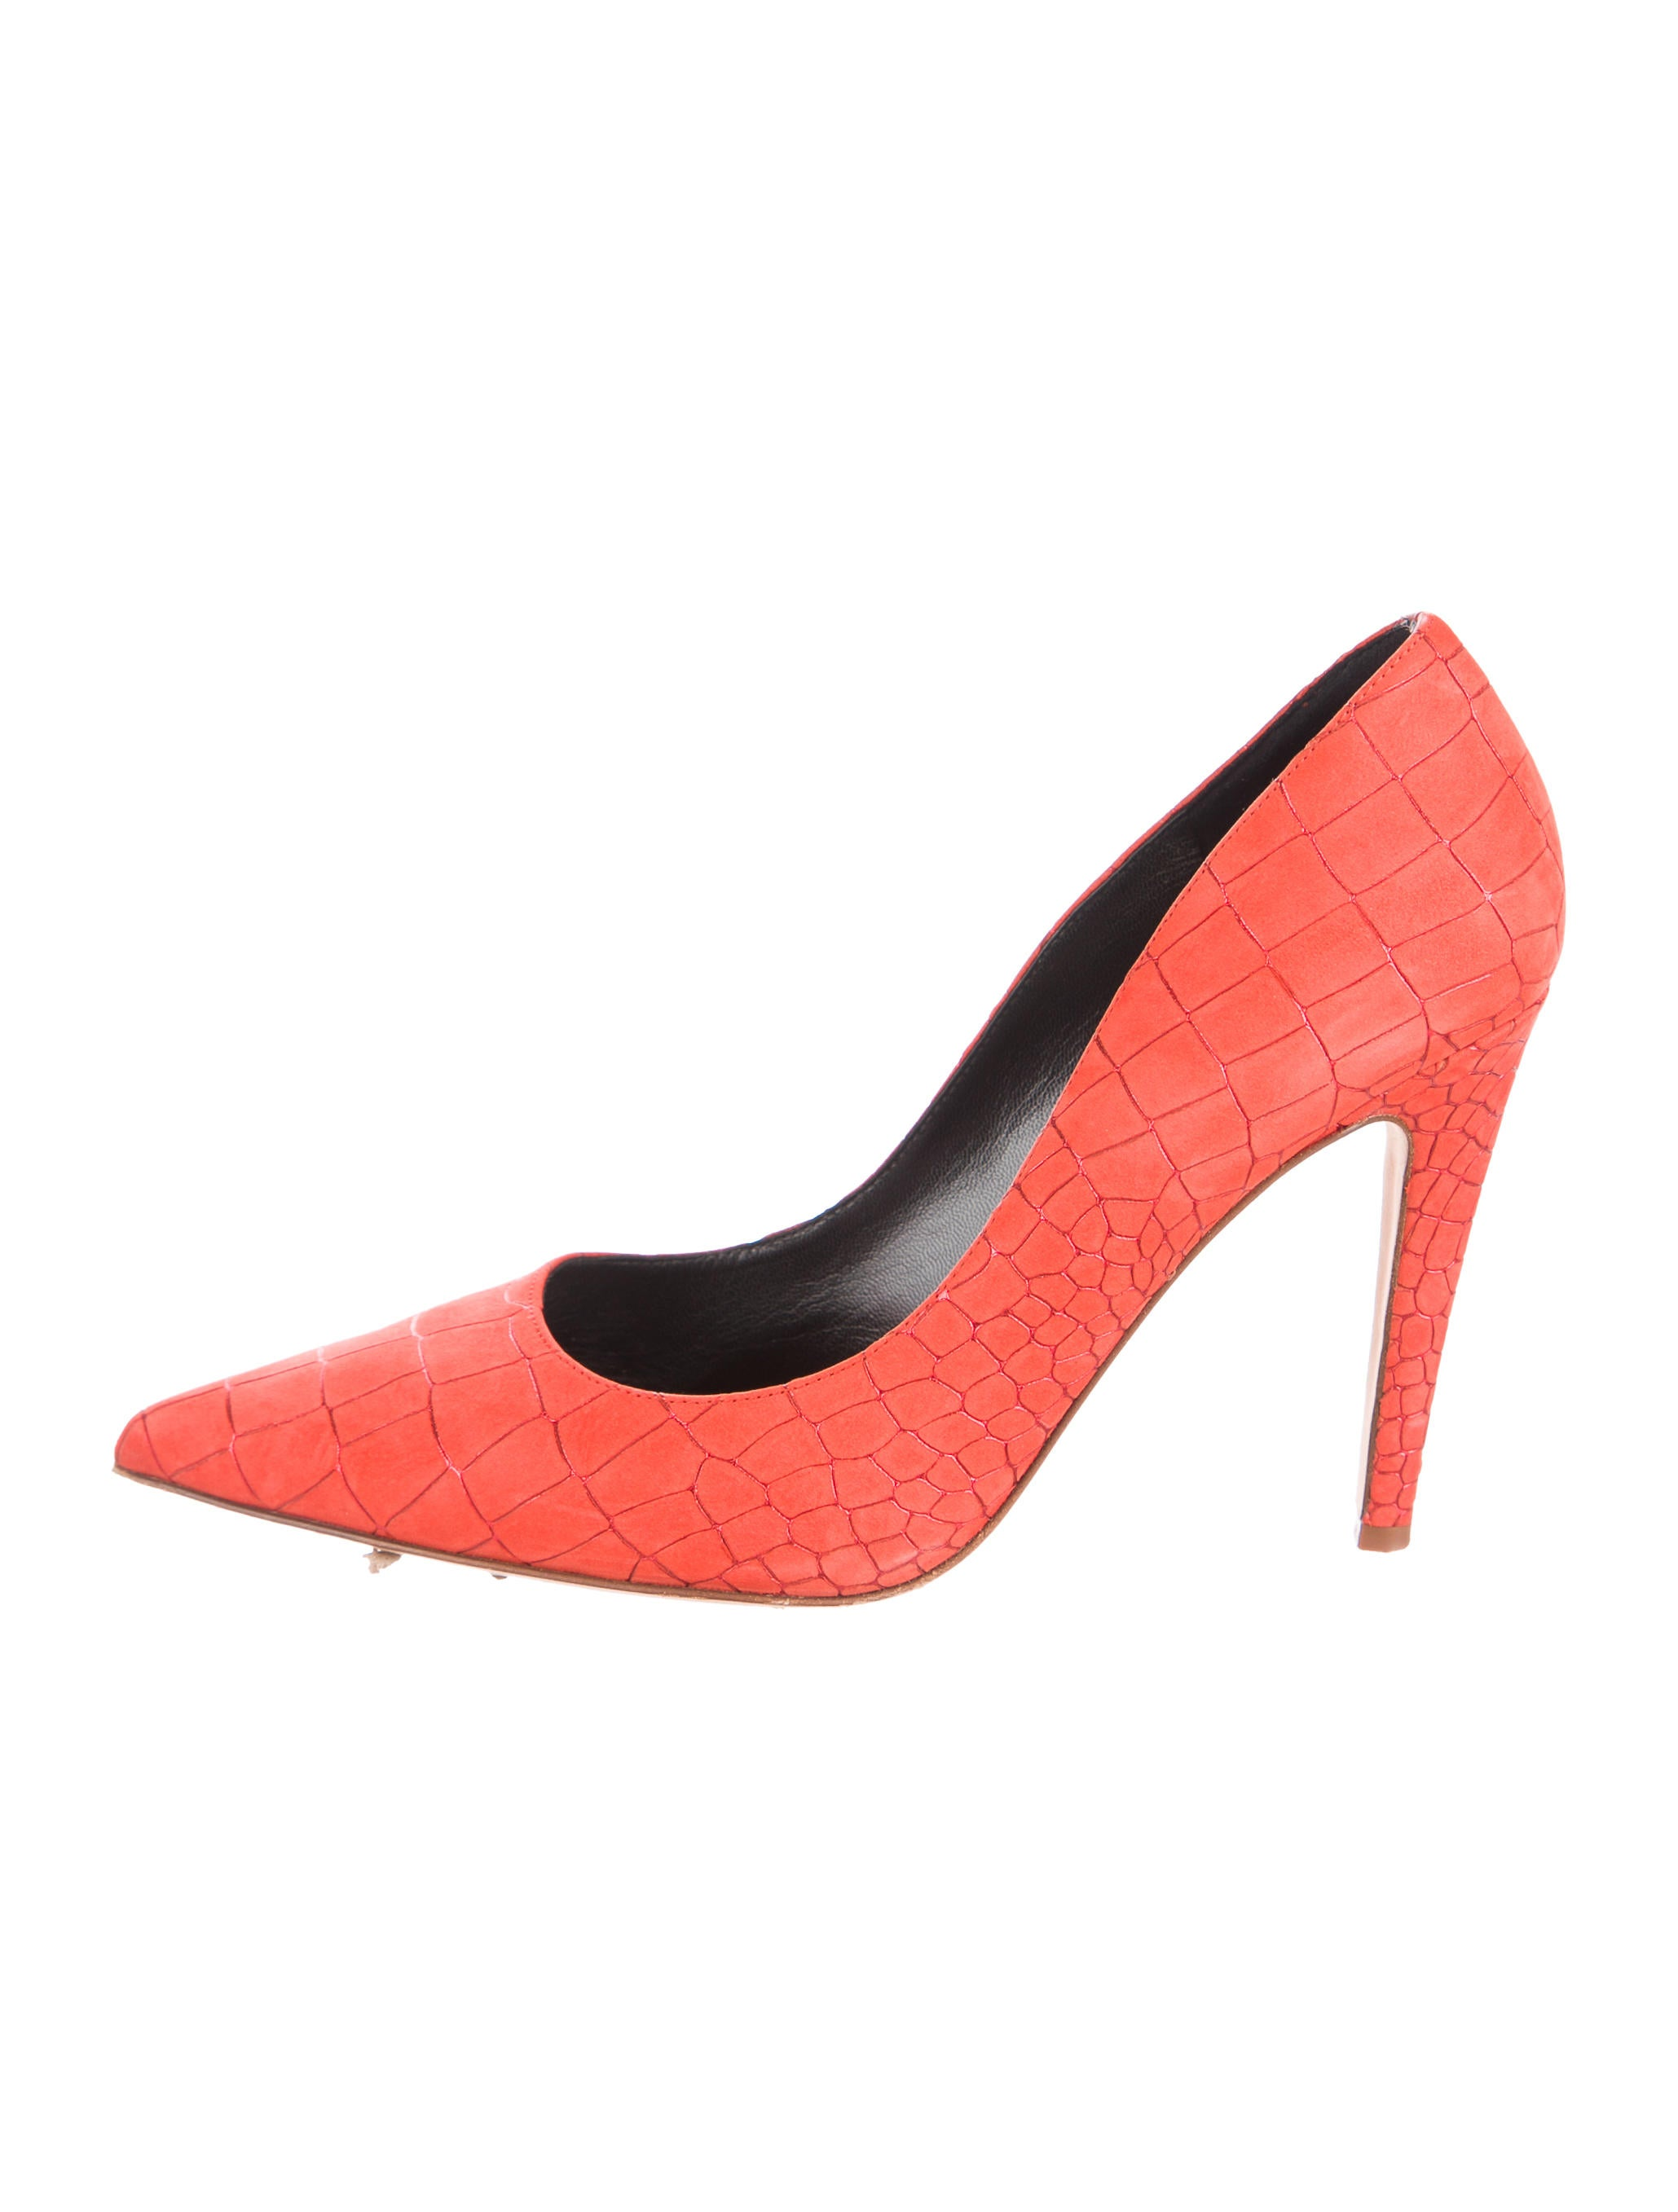 Derek Lam Embossed Suede Pumps how much cheap price outlet perfect big sale cheap online outlet popular free shipping pick a best 0ObaEx